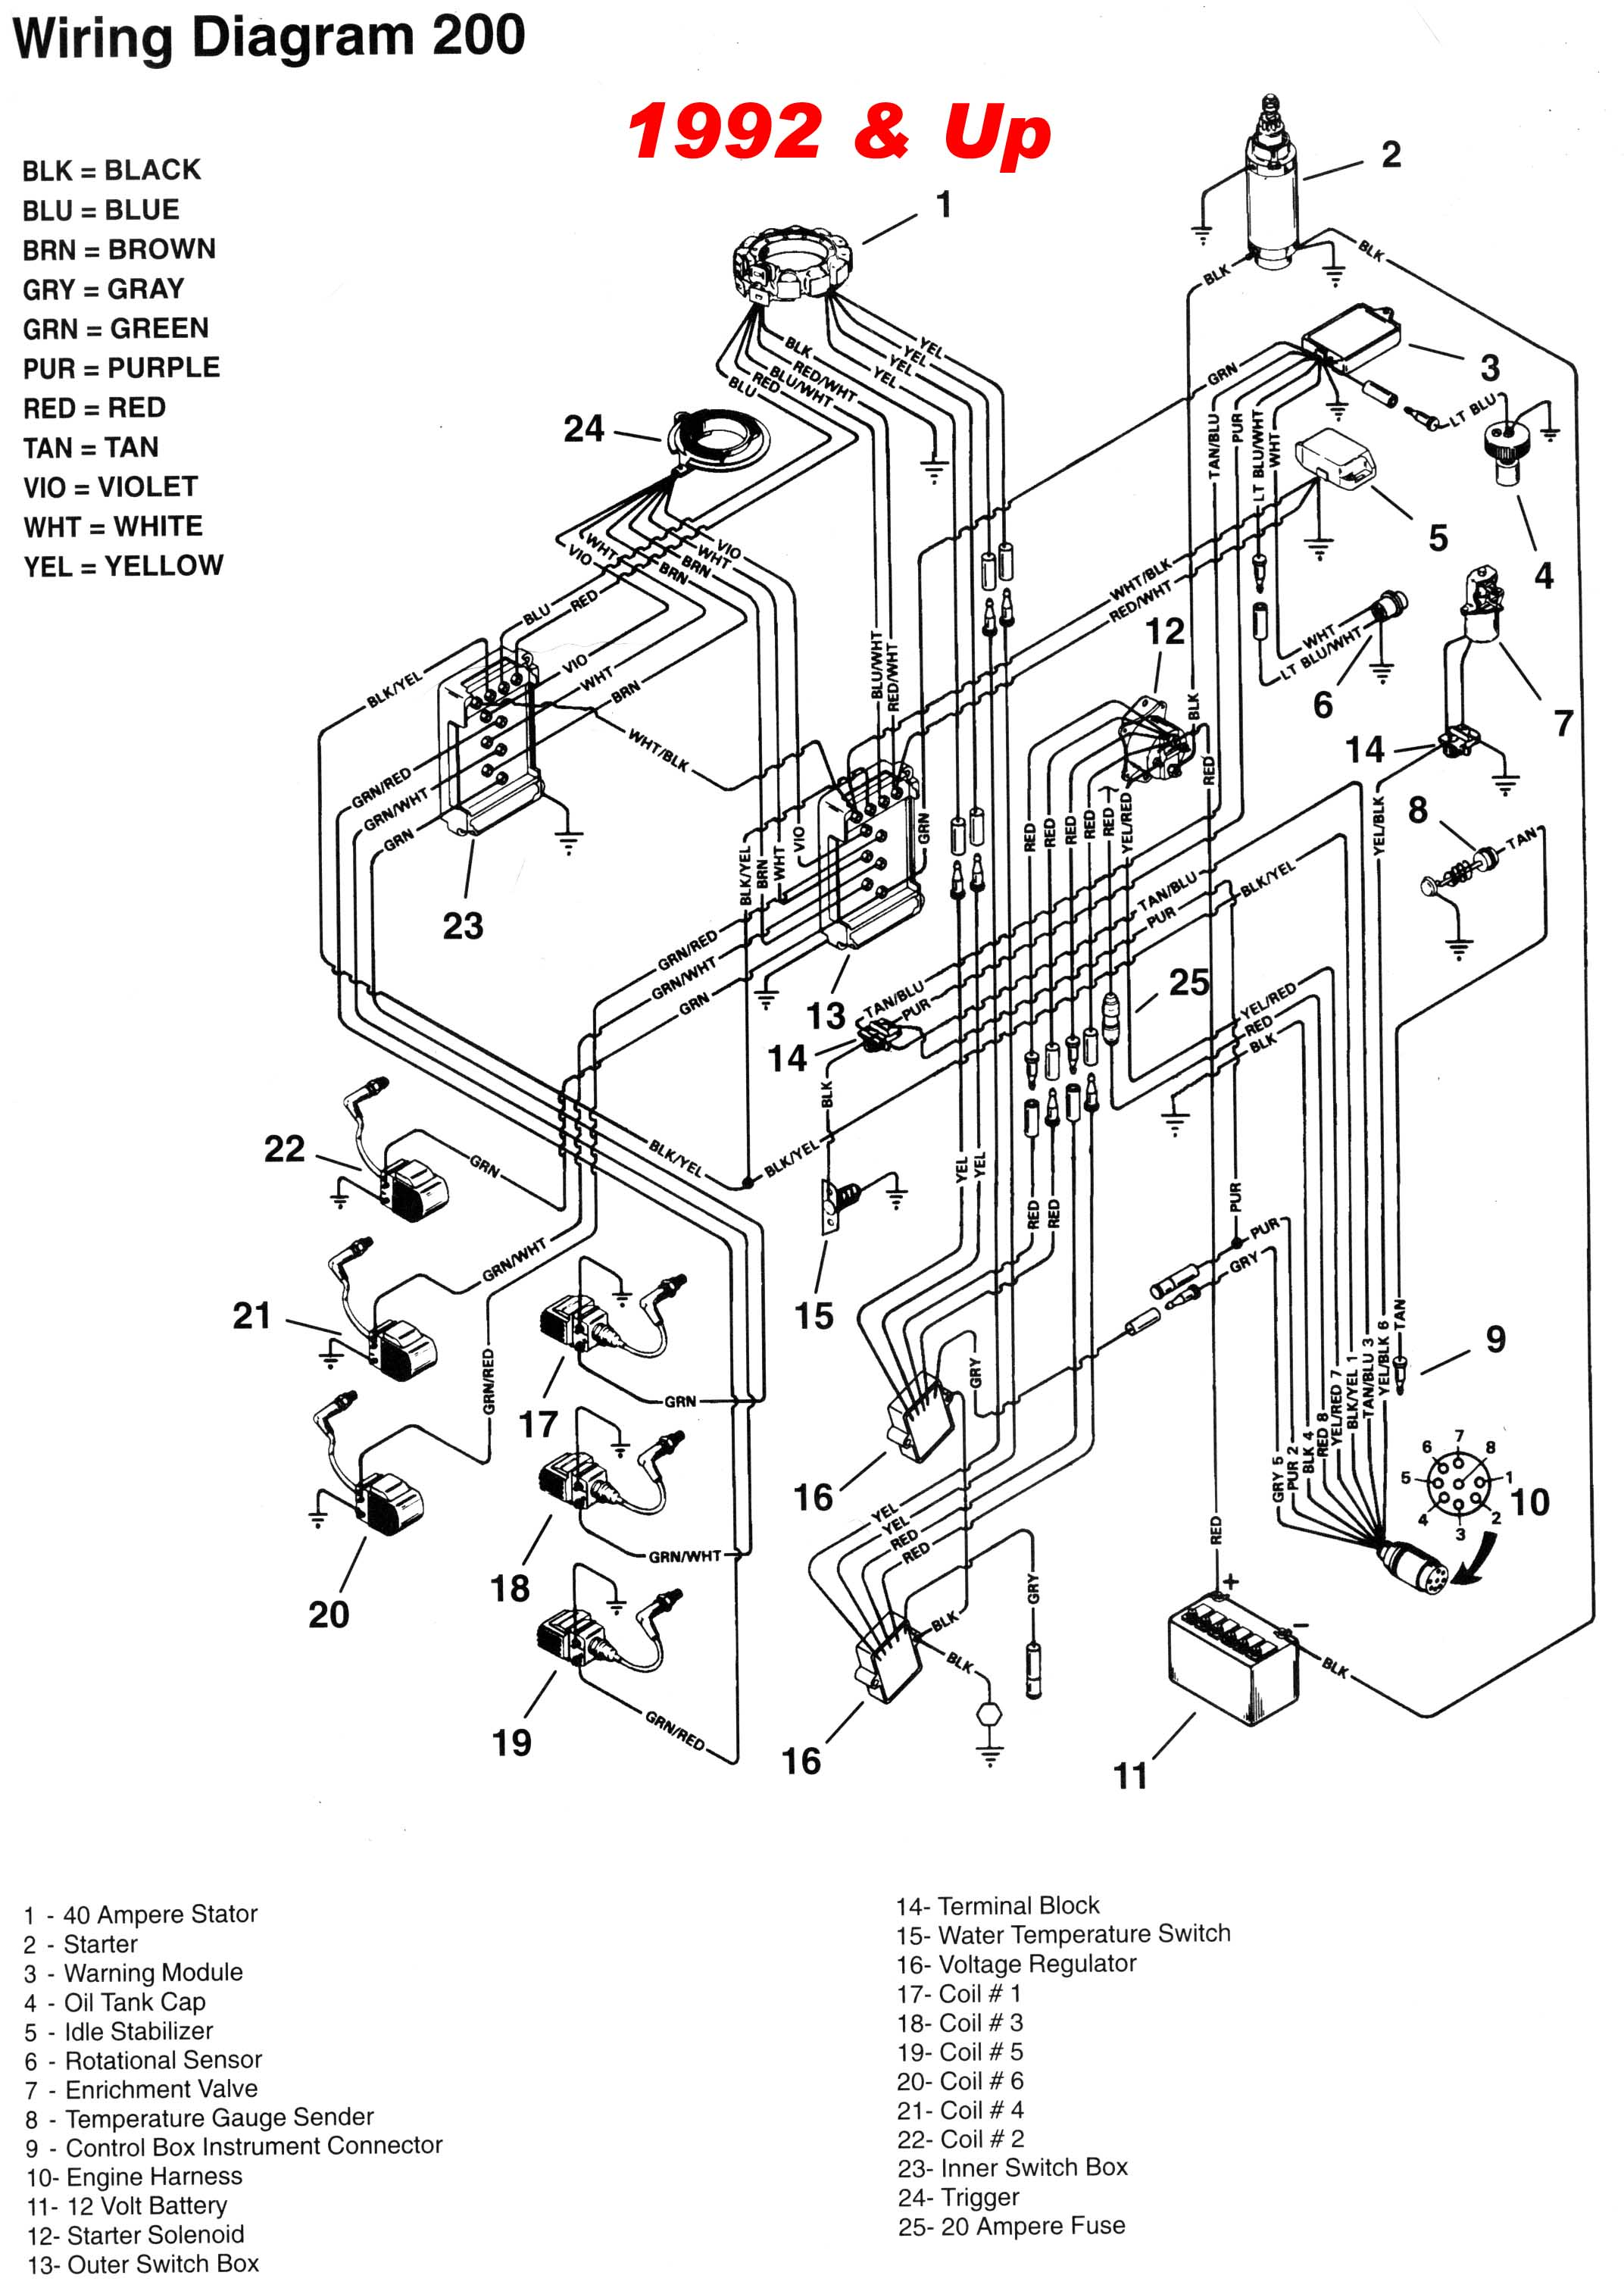 Mercury Wire Diagrams Mercury Free Printable Wiring